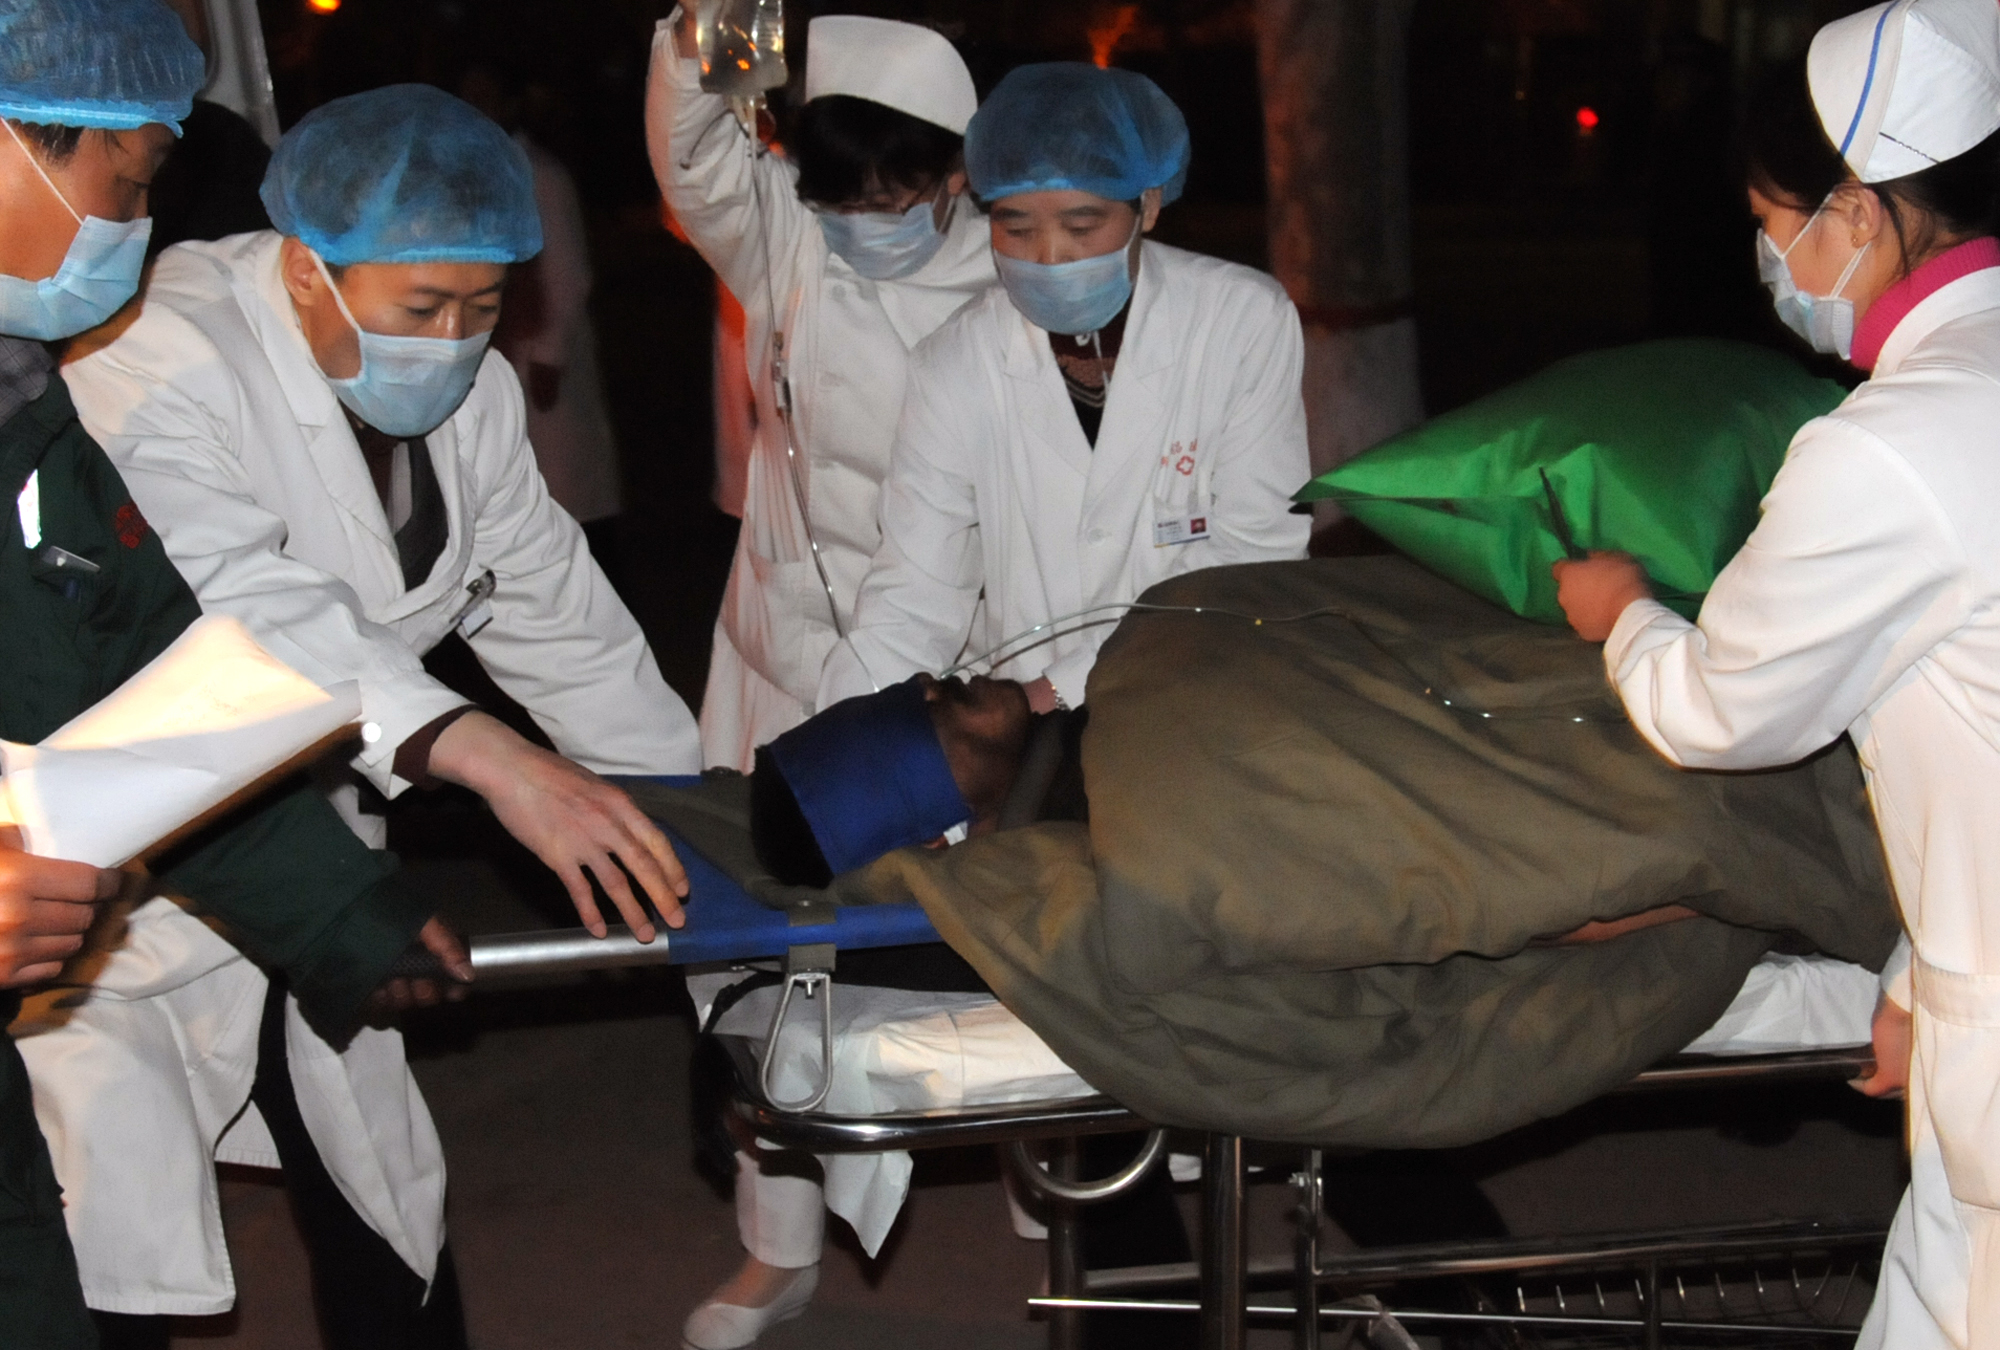 In this photo provided by China's Xinhua News Agency, a rescued miner is taken to a hospital in Xiangning County, north China's Shanxi Province yester...